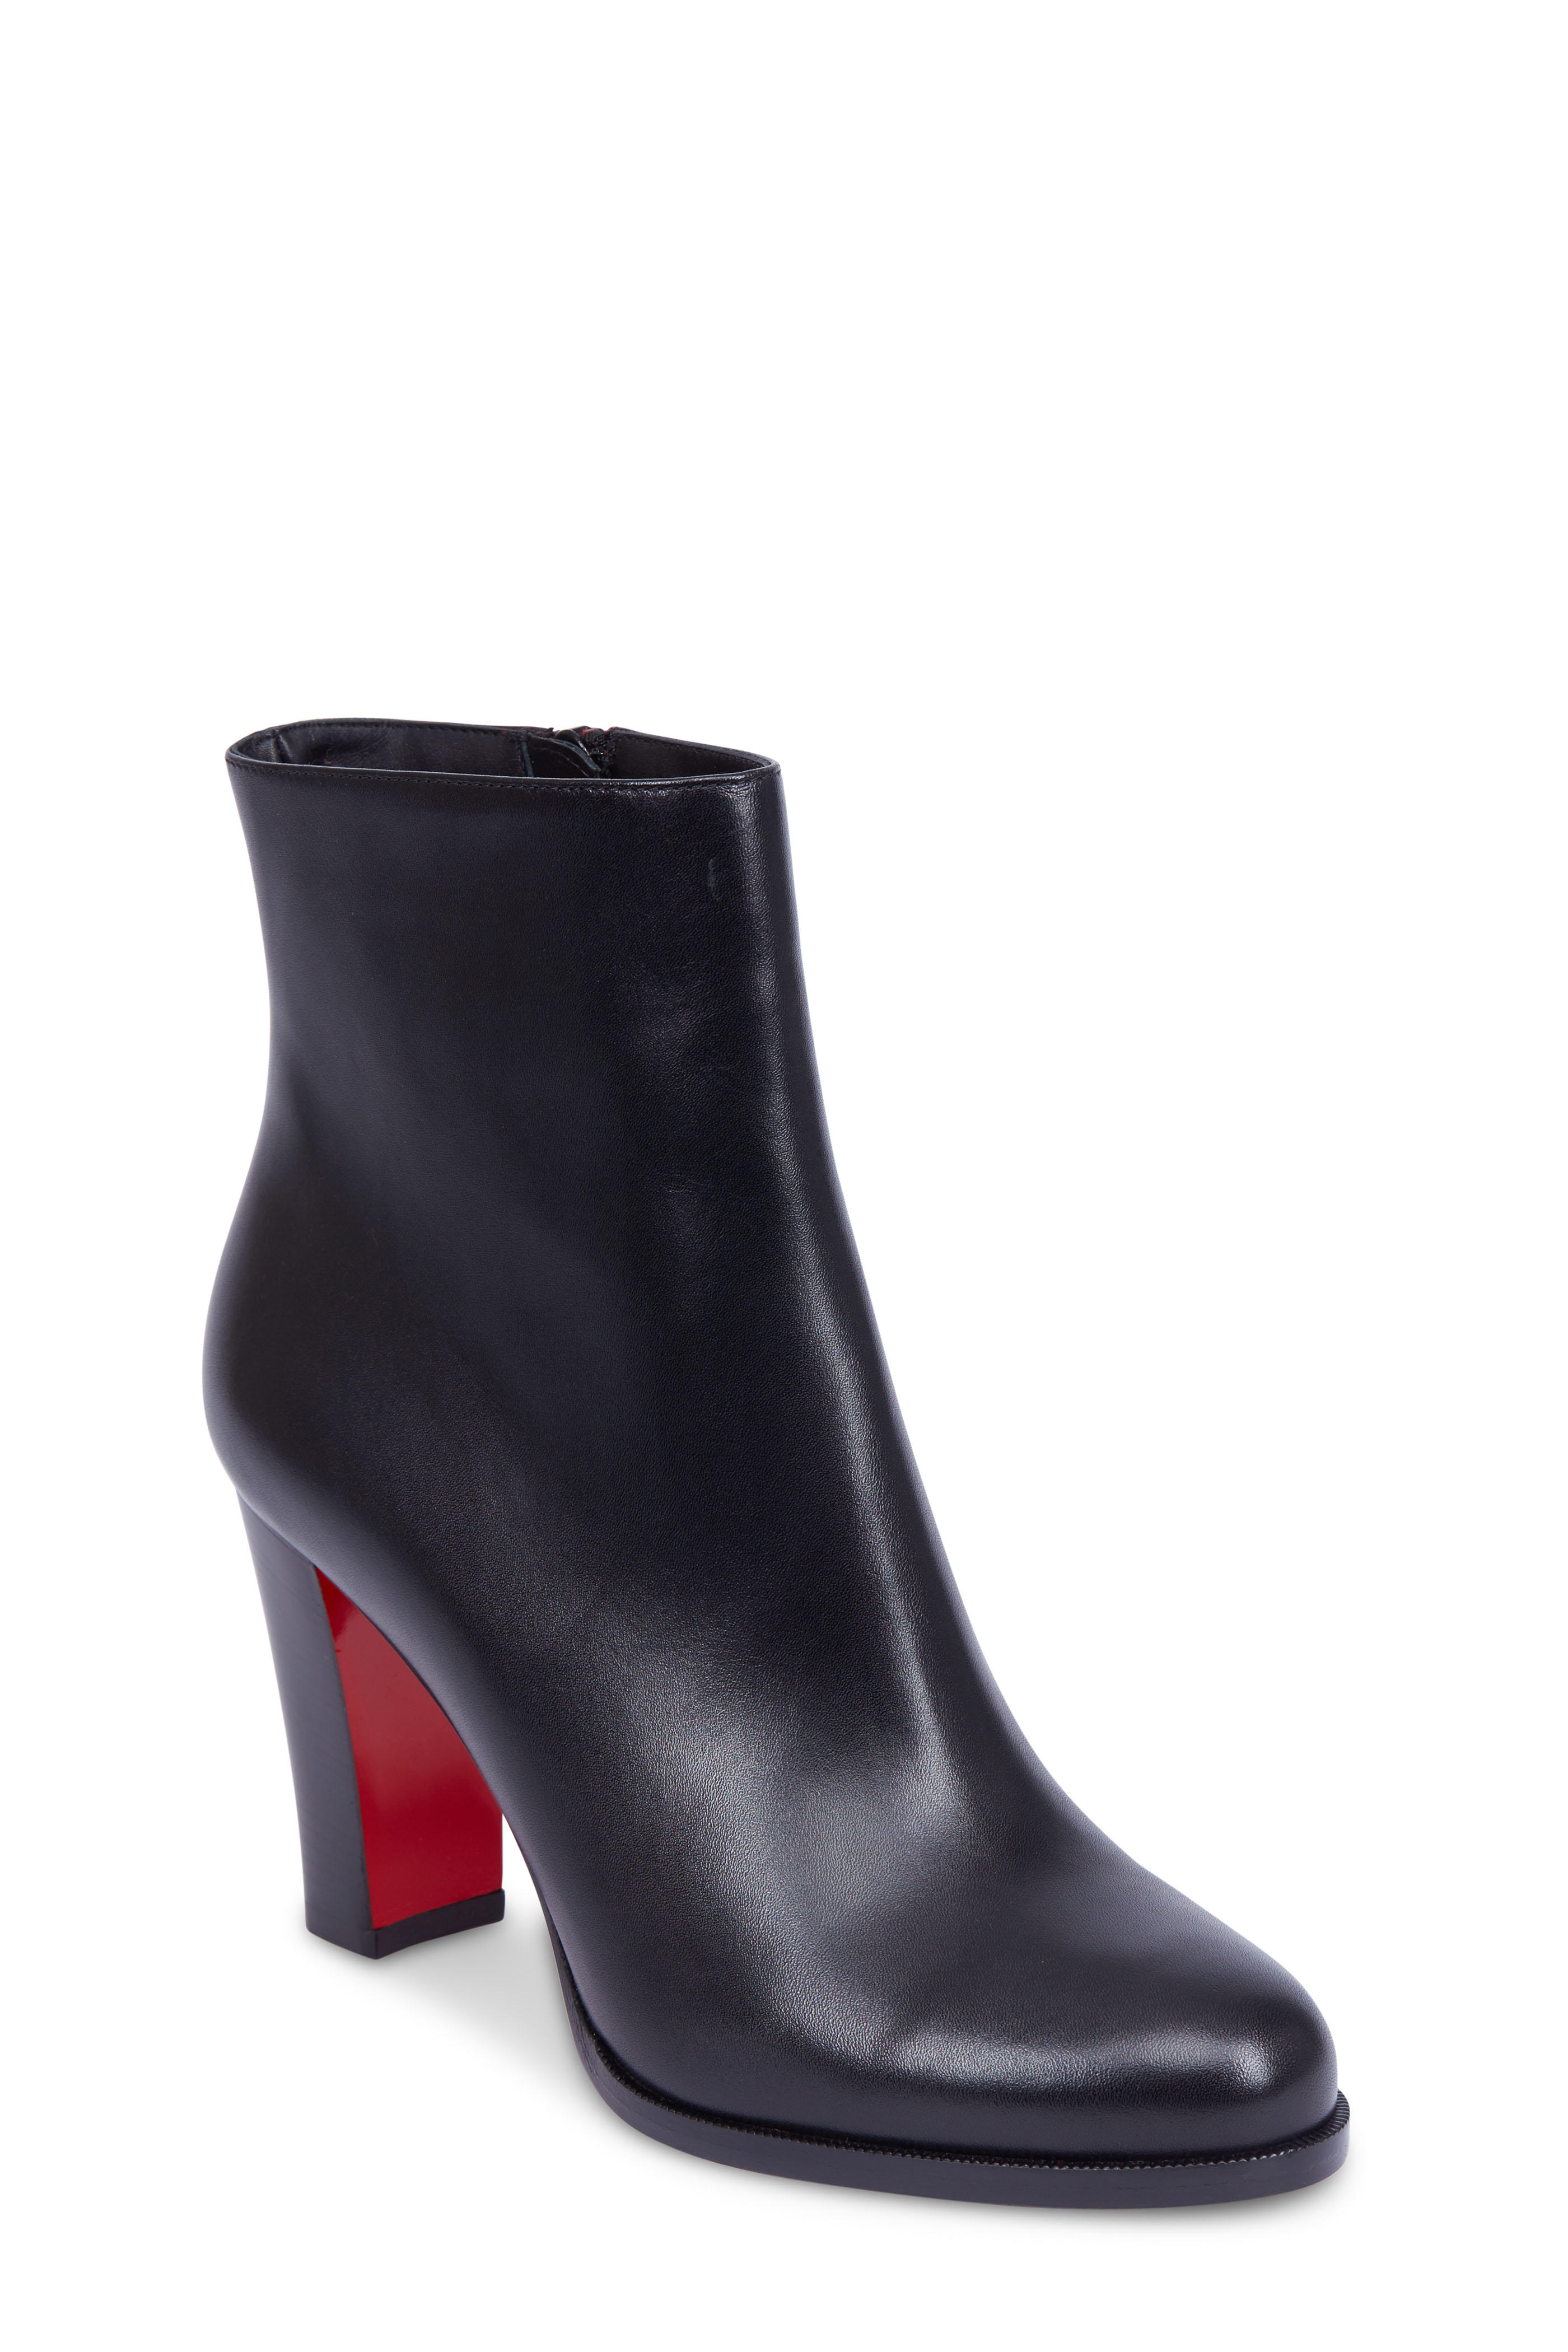 huge selection of ad28a 61318 Christian Louboutin - Adox Black Leather Stack Heel Ankle ...